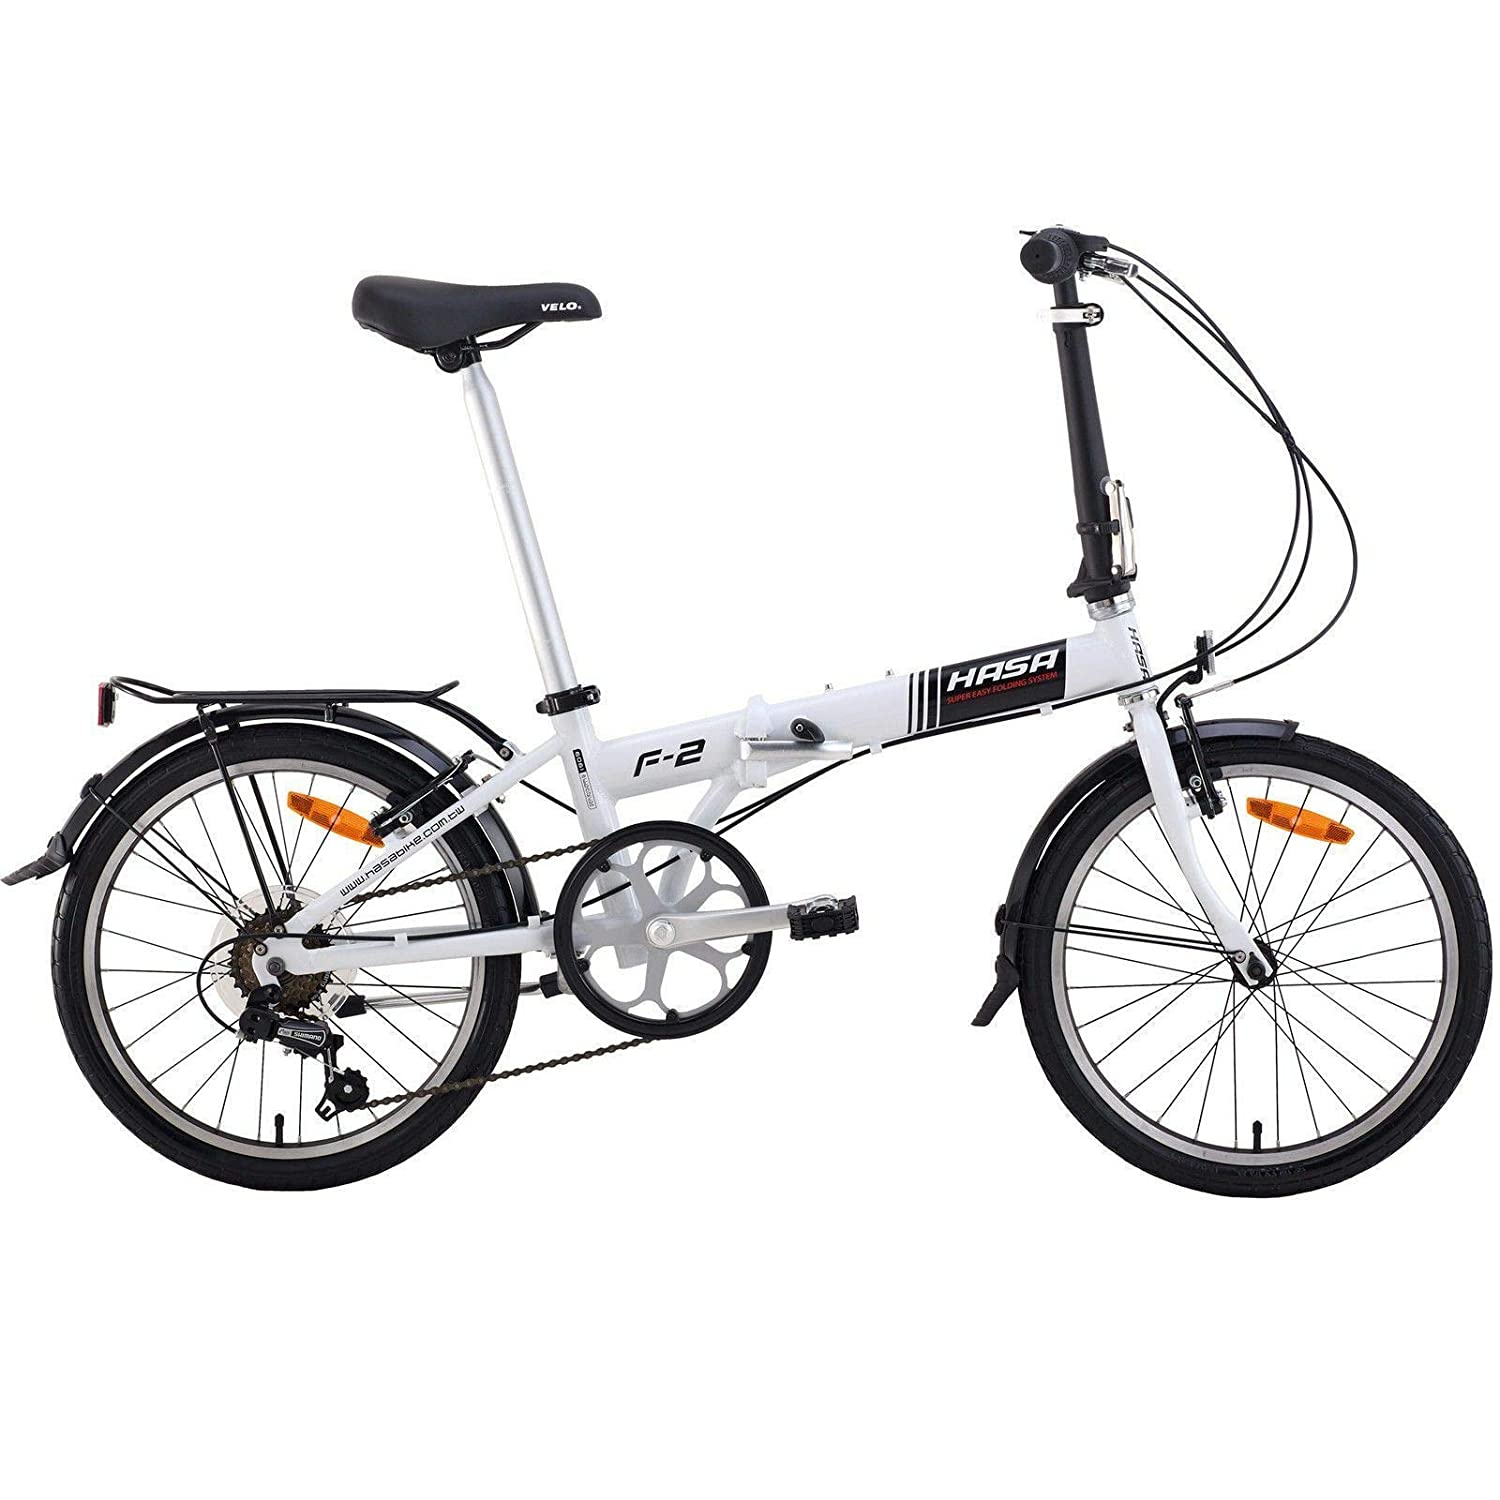 Top 10 Best Folding Bikes Reviews in 2020 5